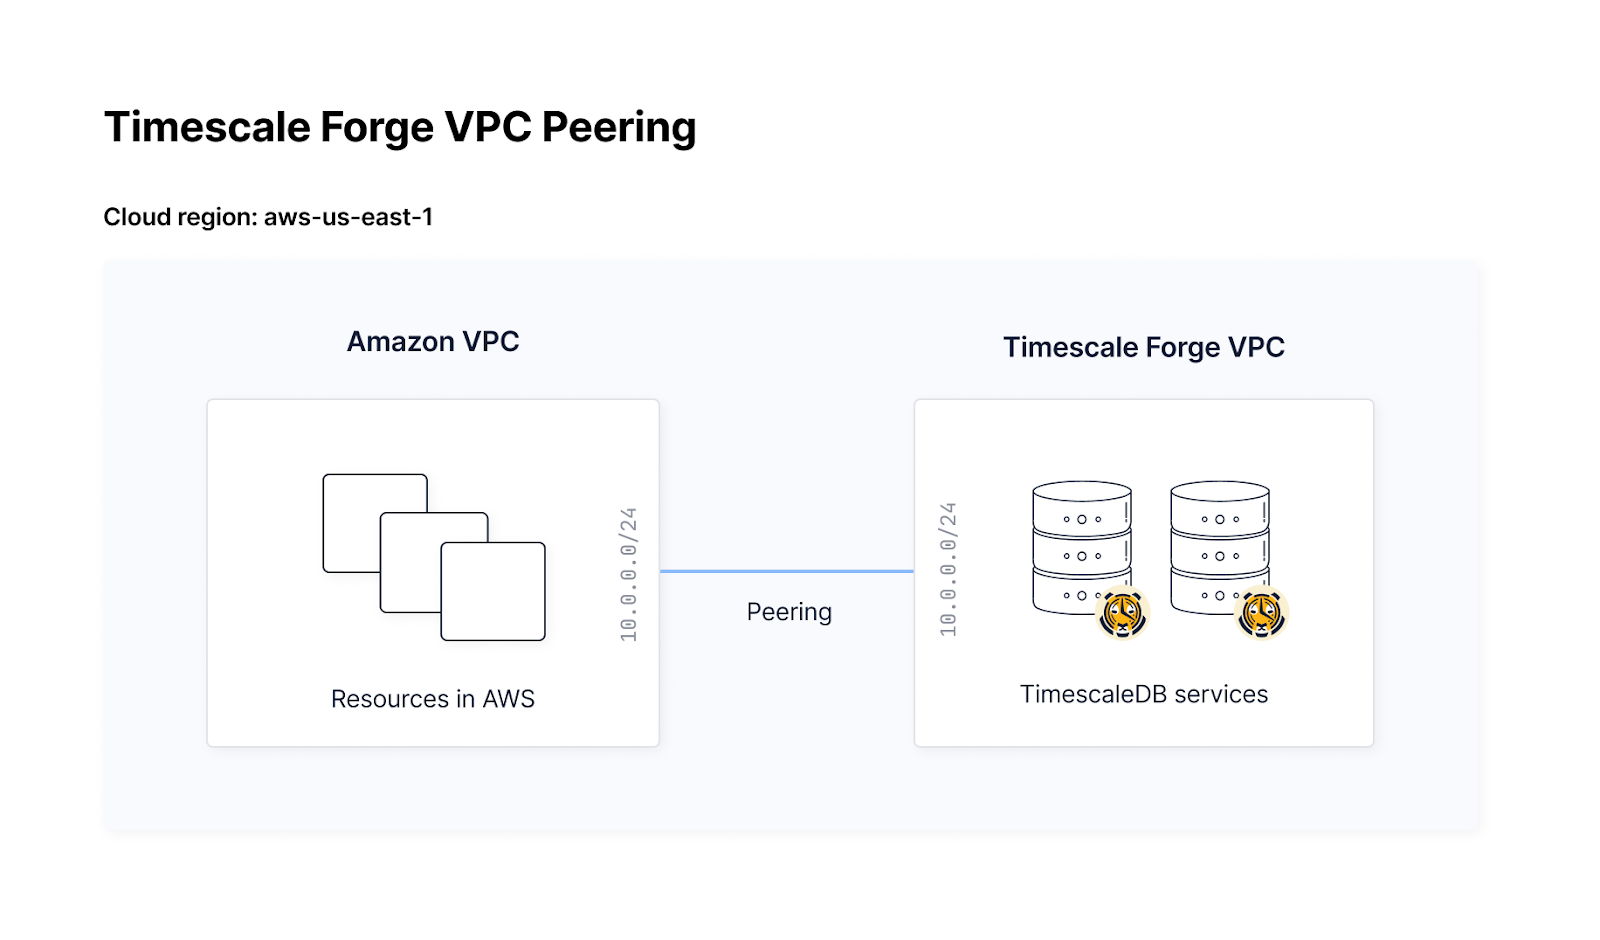 Architecture diagram showing the peering connection between an Amazon VPC and Timescale Forge VPC